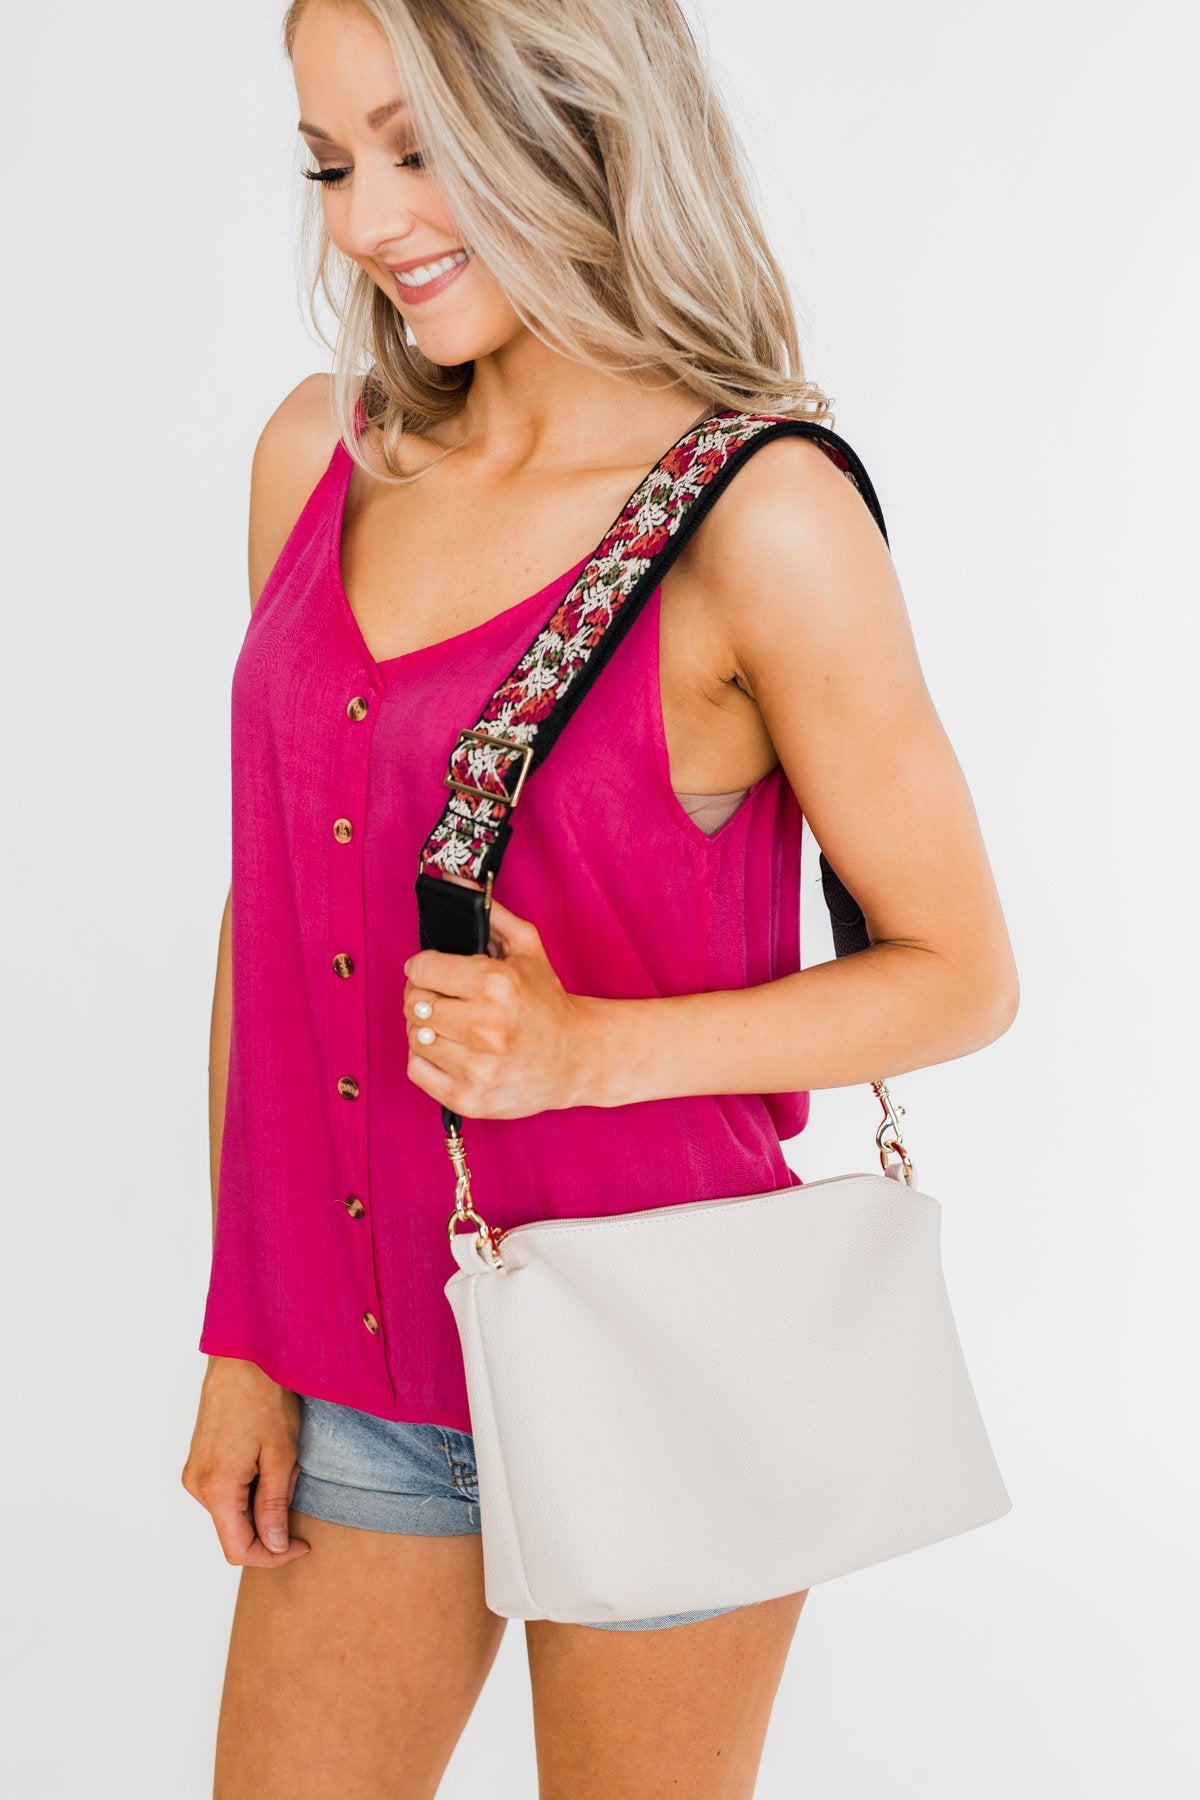 Adjustable Printed Shoulder Strap- Pink, Cream, Green